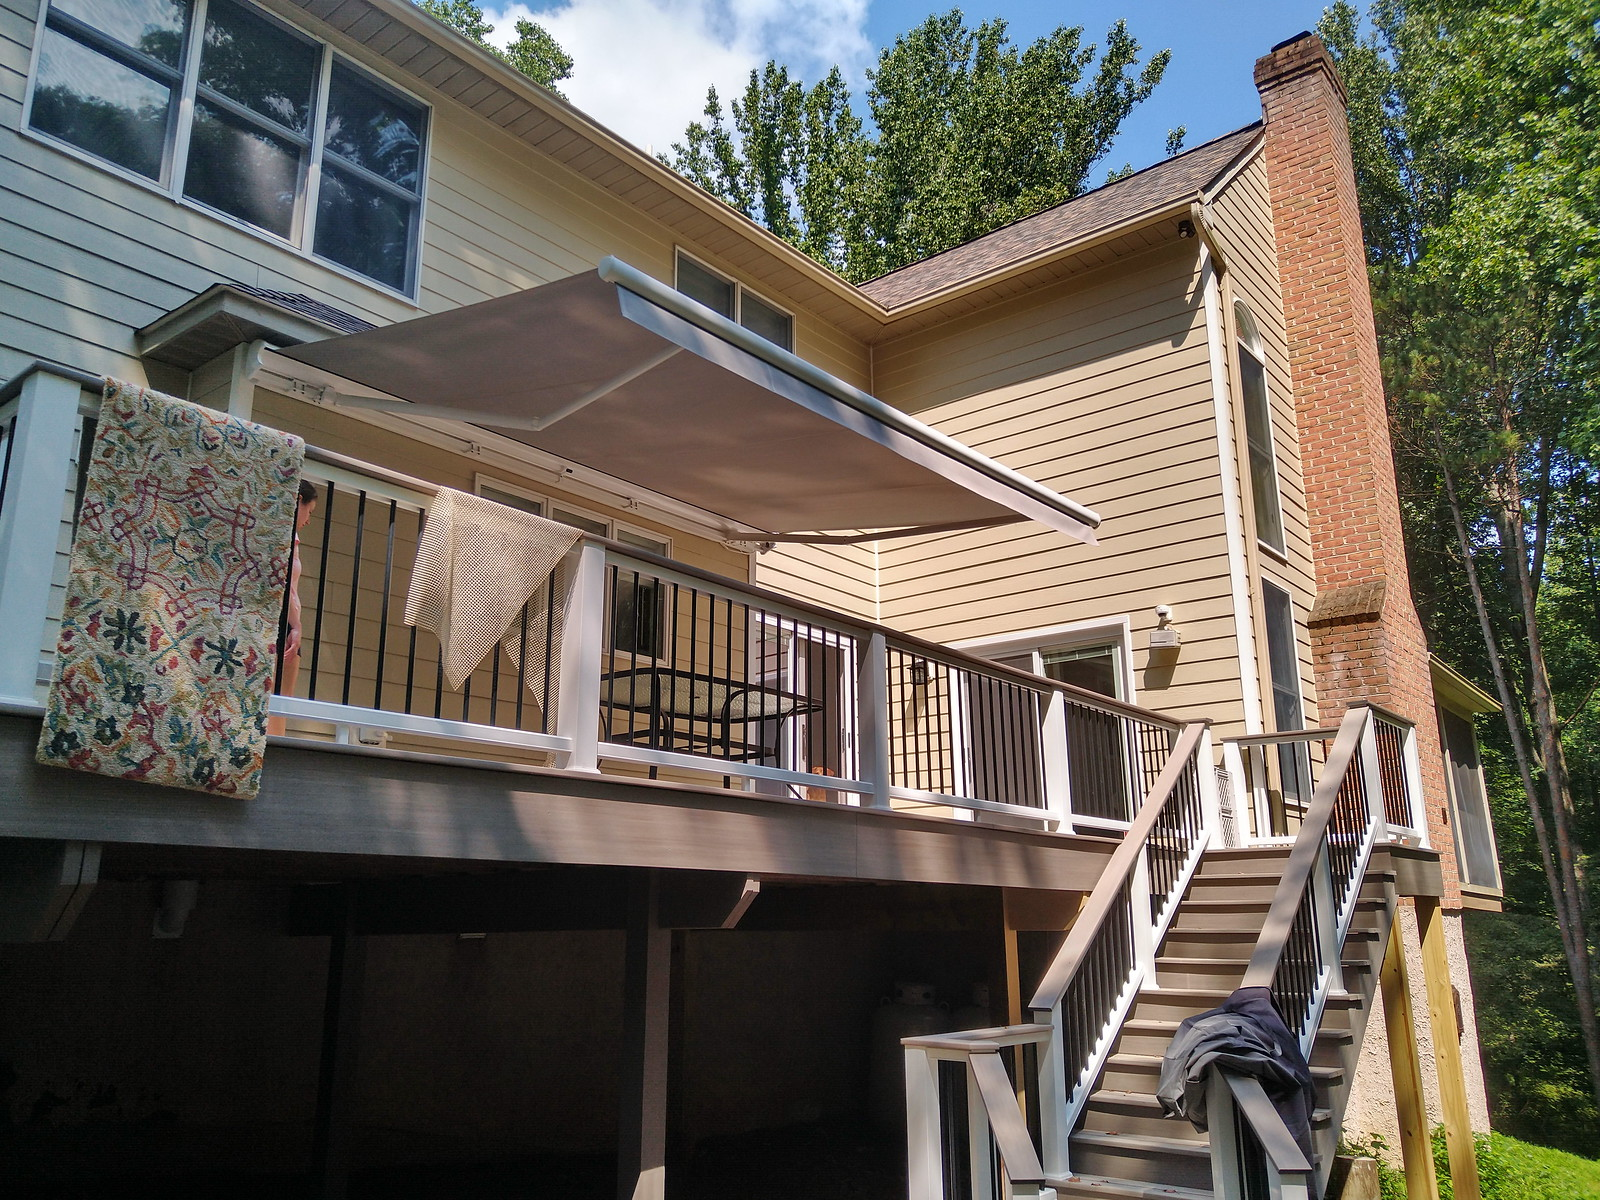 Retractable Awning Straight Valance